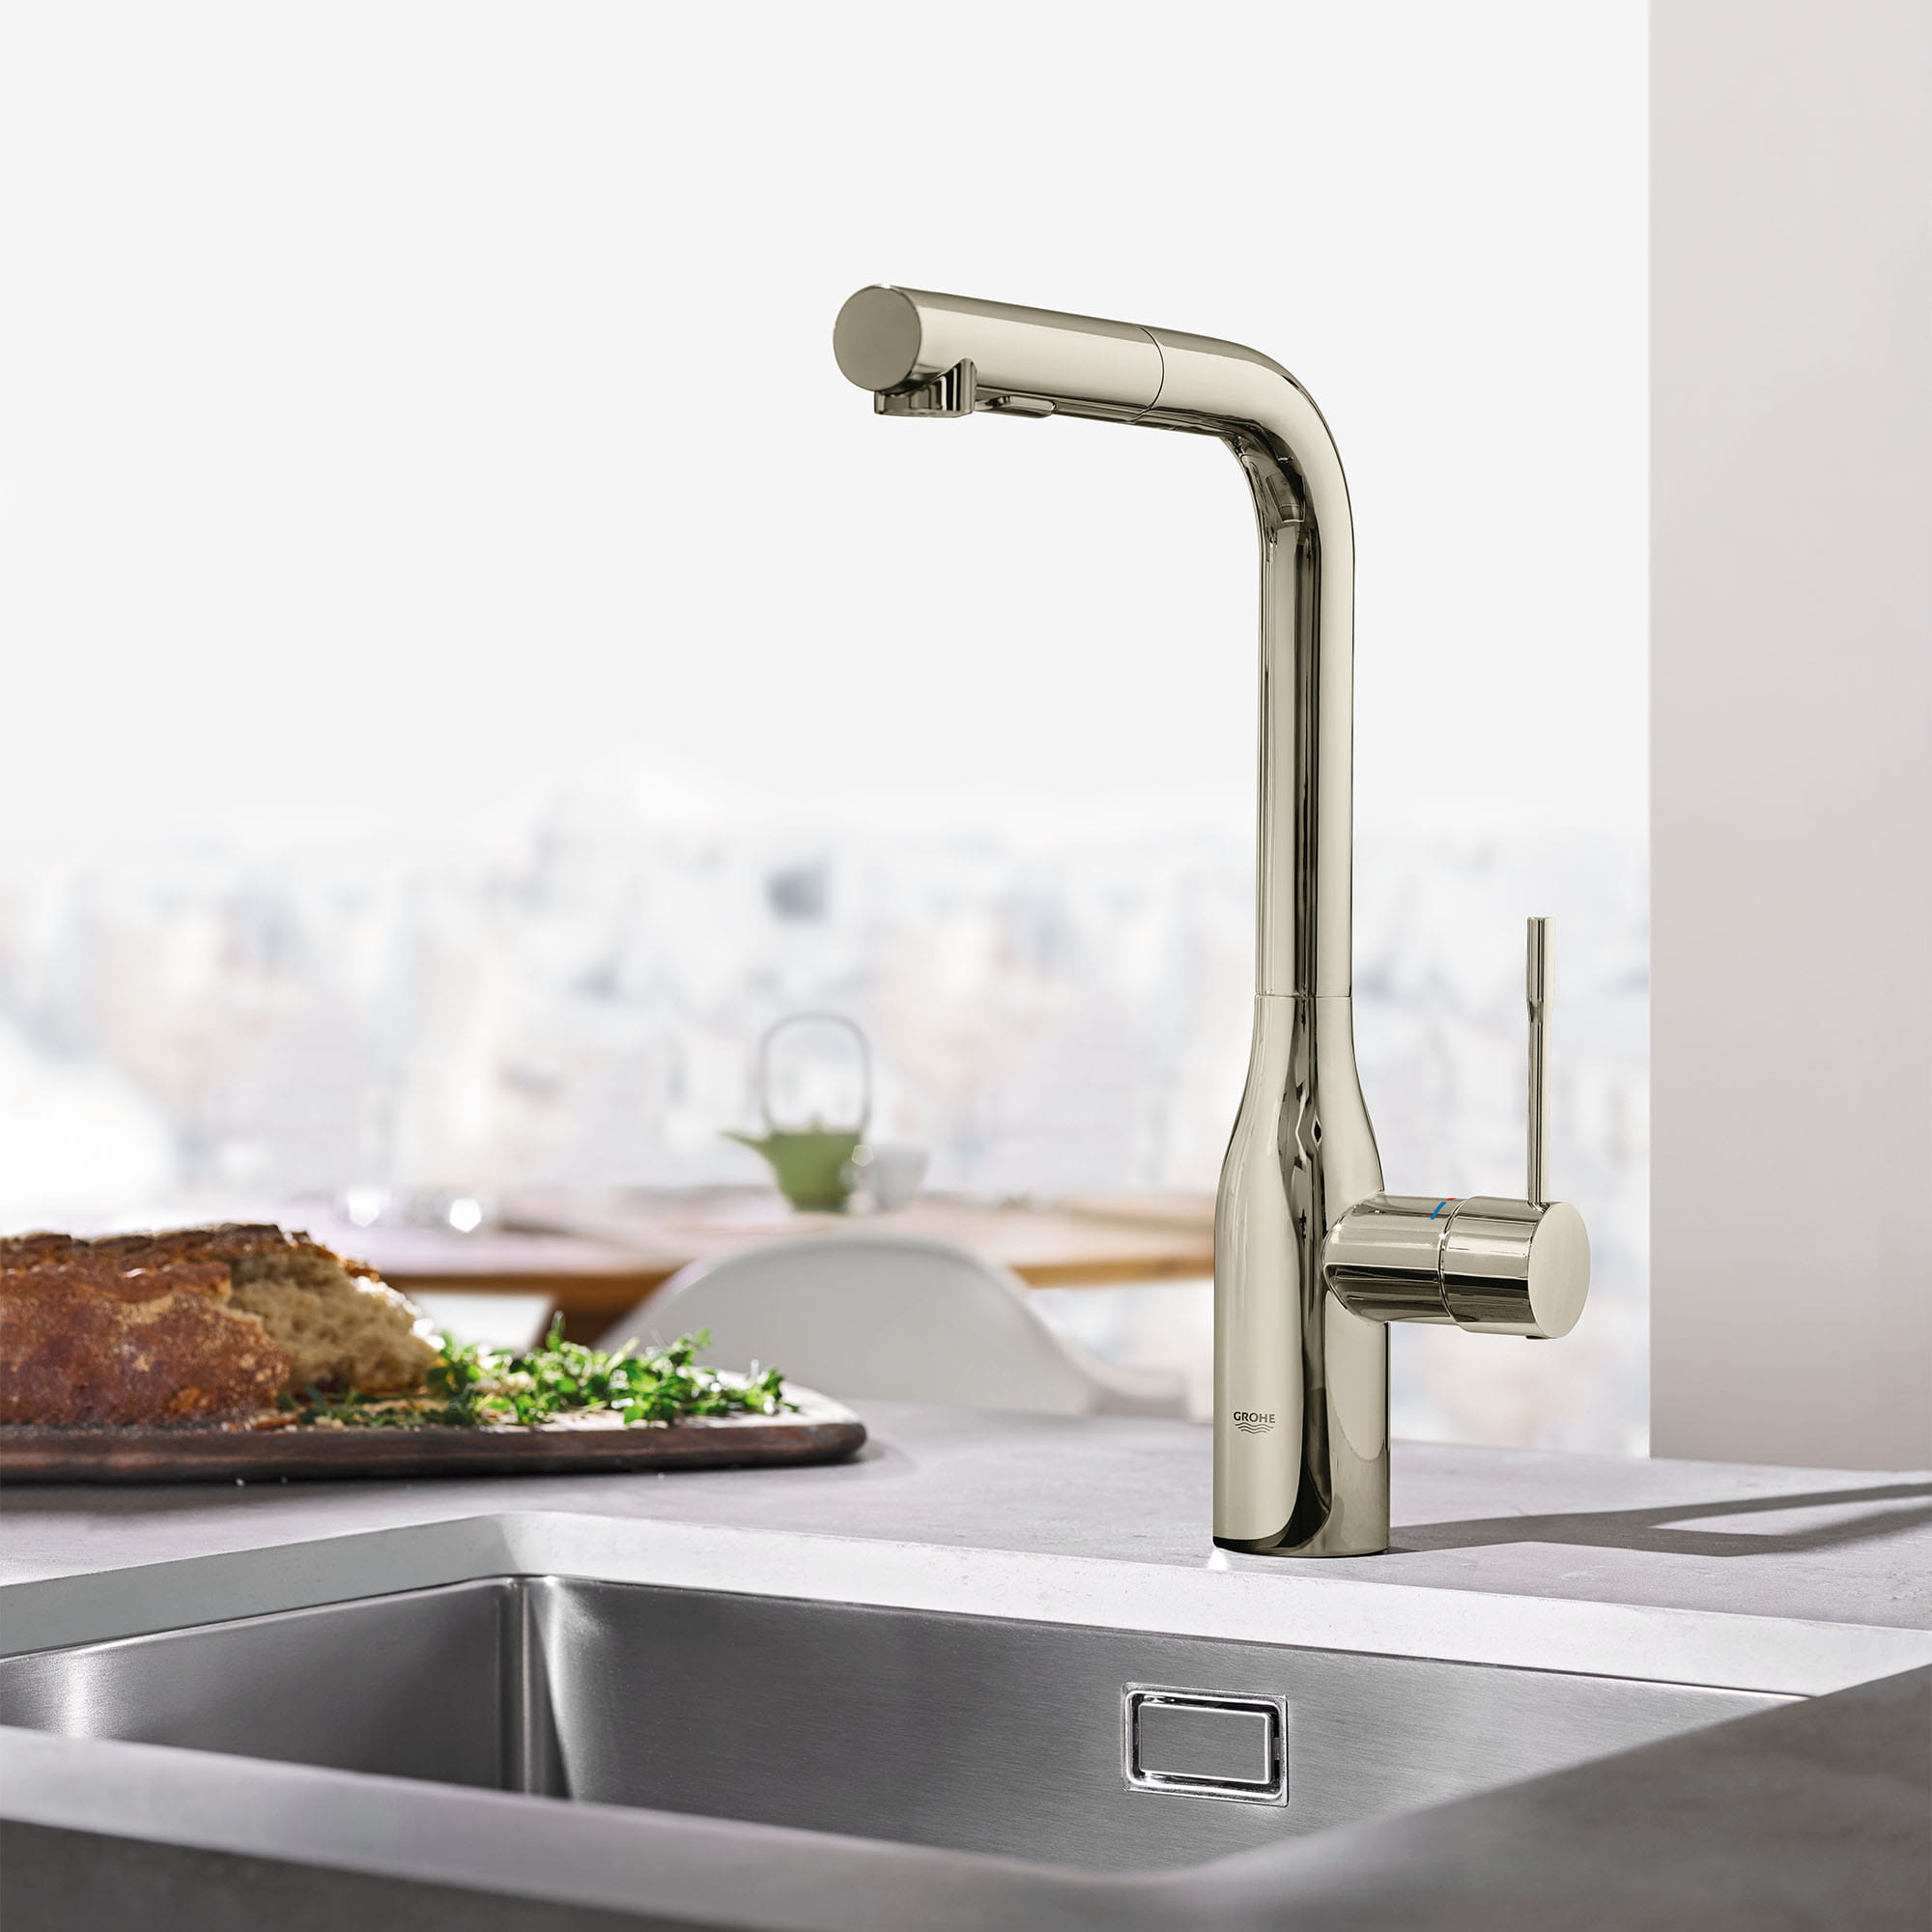 Single Handle Pull Out Kitchen Faucet Dual Spray 175 GPM GROHE POLISHED NICKEL